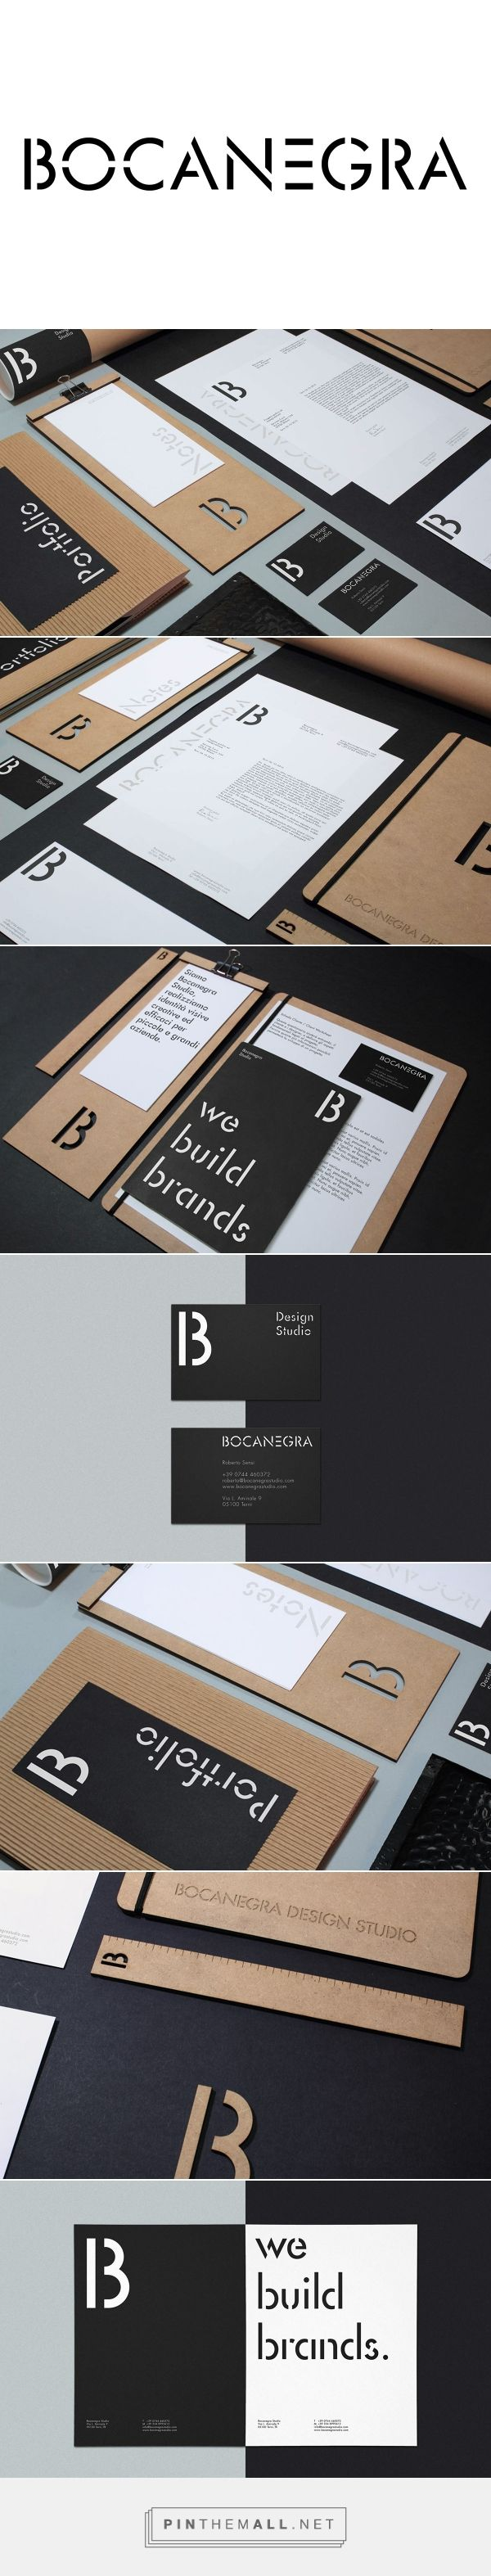 Bocanegra Design Studio Self Branding | Fivestar Branding Agency – Design and Branding Agency & Curated Inspiration Gallery